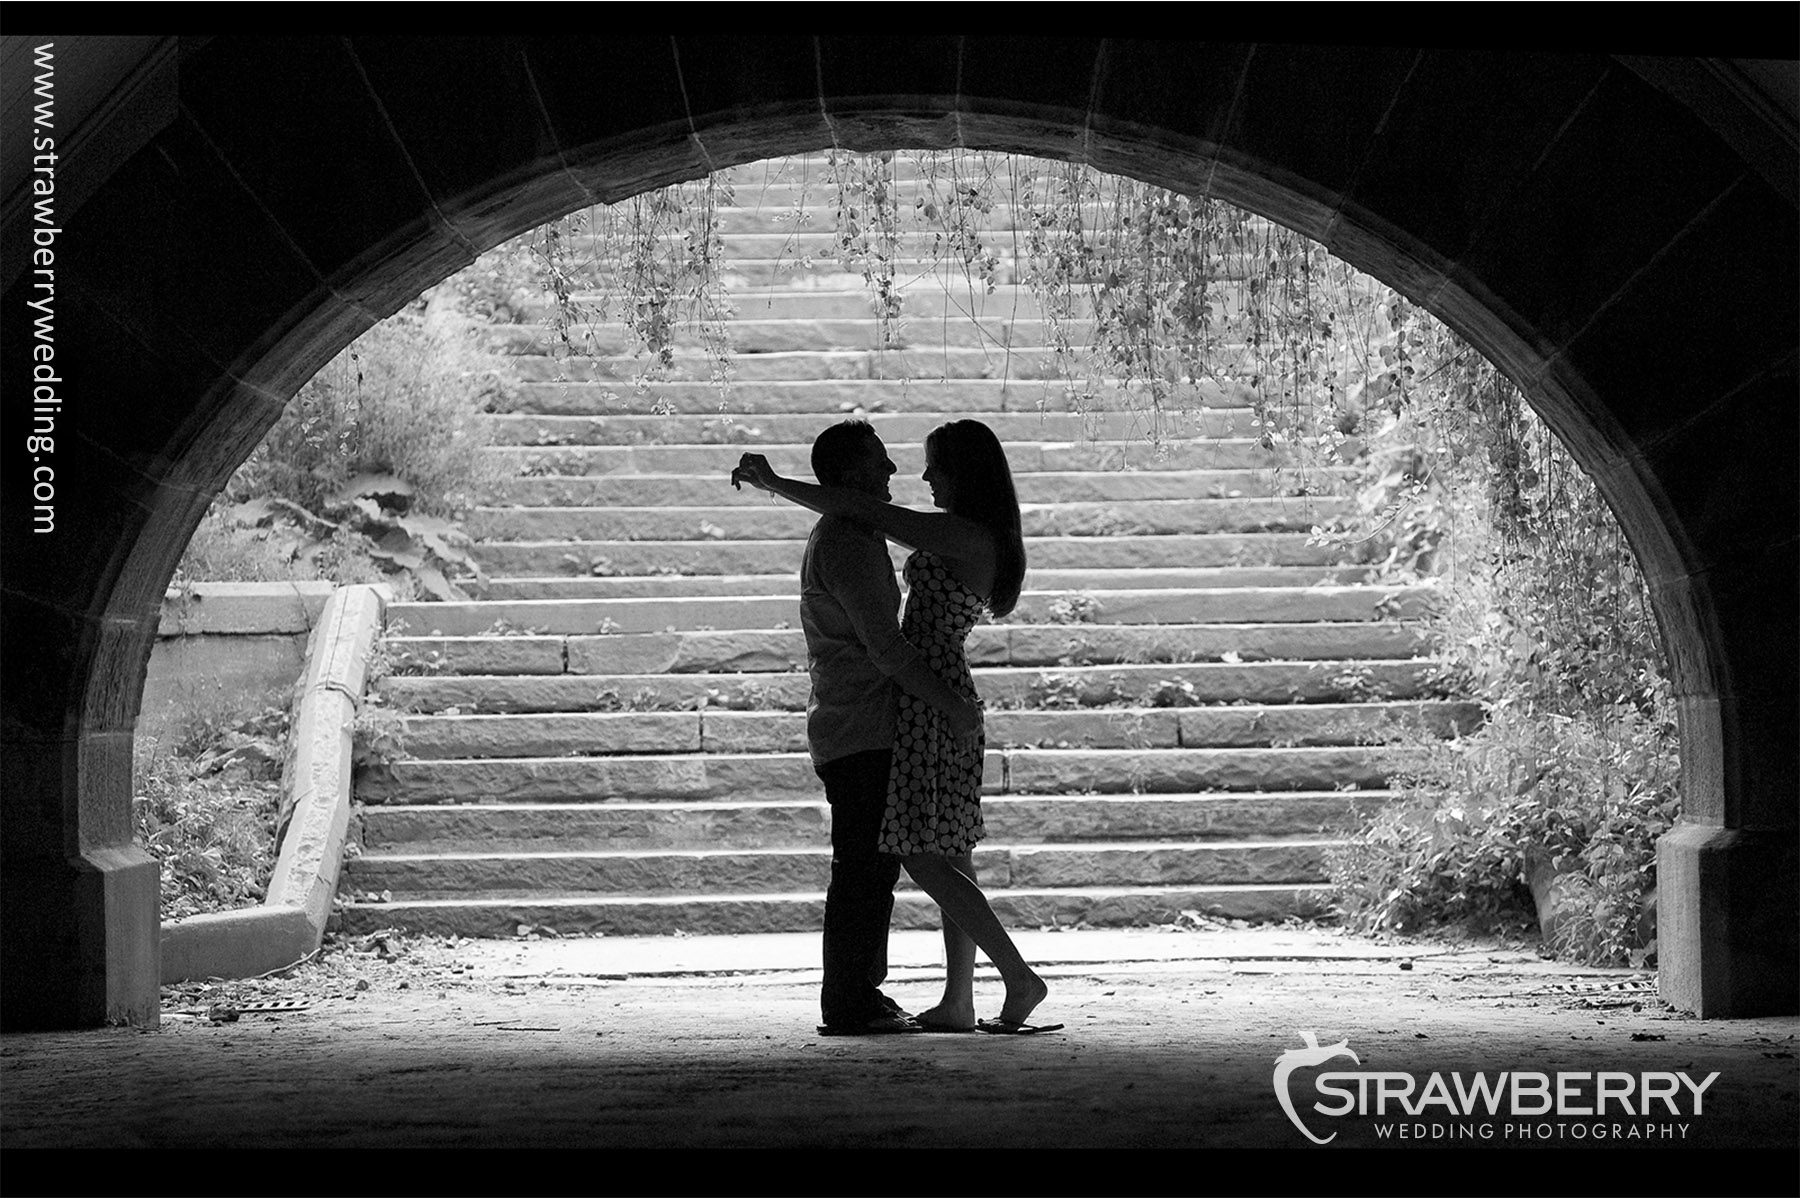 Engagement-session-Engagement-photo-idea-Picture-Ideas-Engagement-Shoot-Engagement-shoot-Inspir-wallpaper-wpc9004705